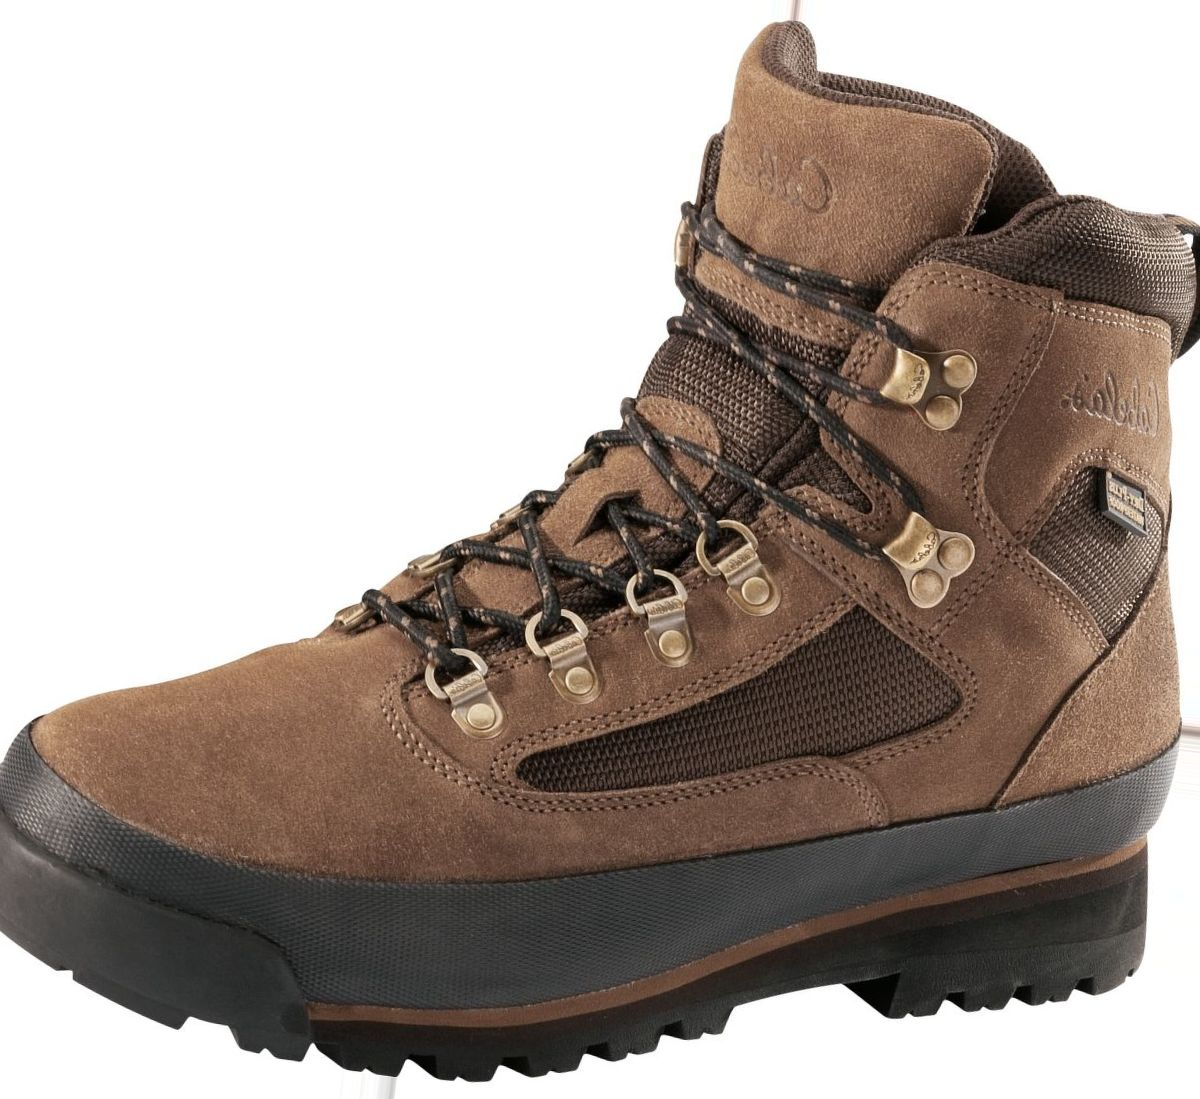 Cabela's Backcountry™ Hikers